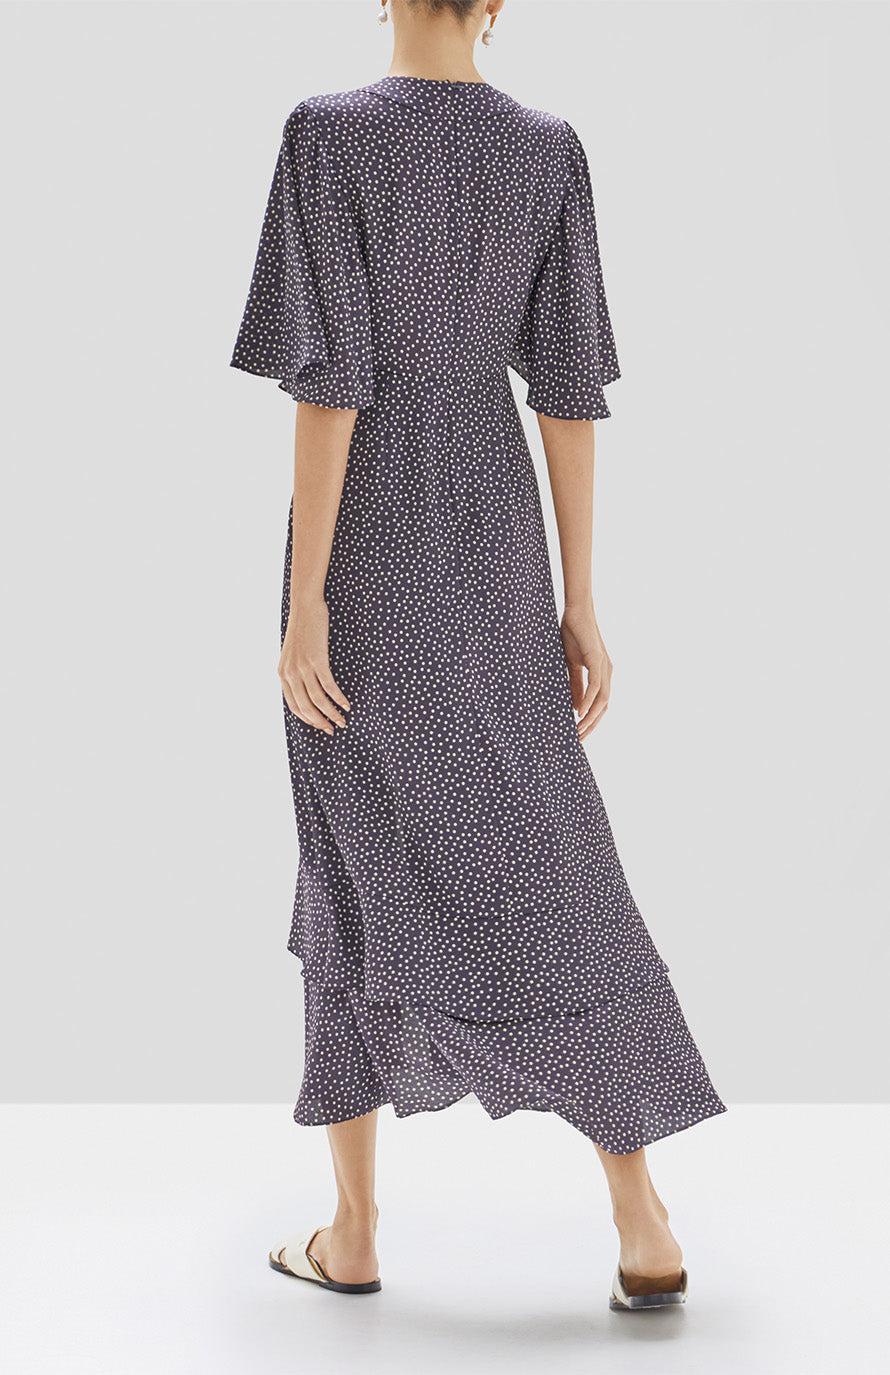 Alexis Kasany Dress in Navy and Beige Dot from the Pre Spring 2020 Collection - Rear View